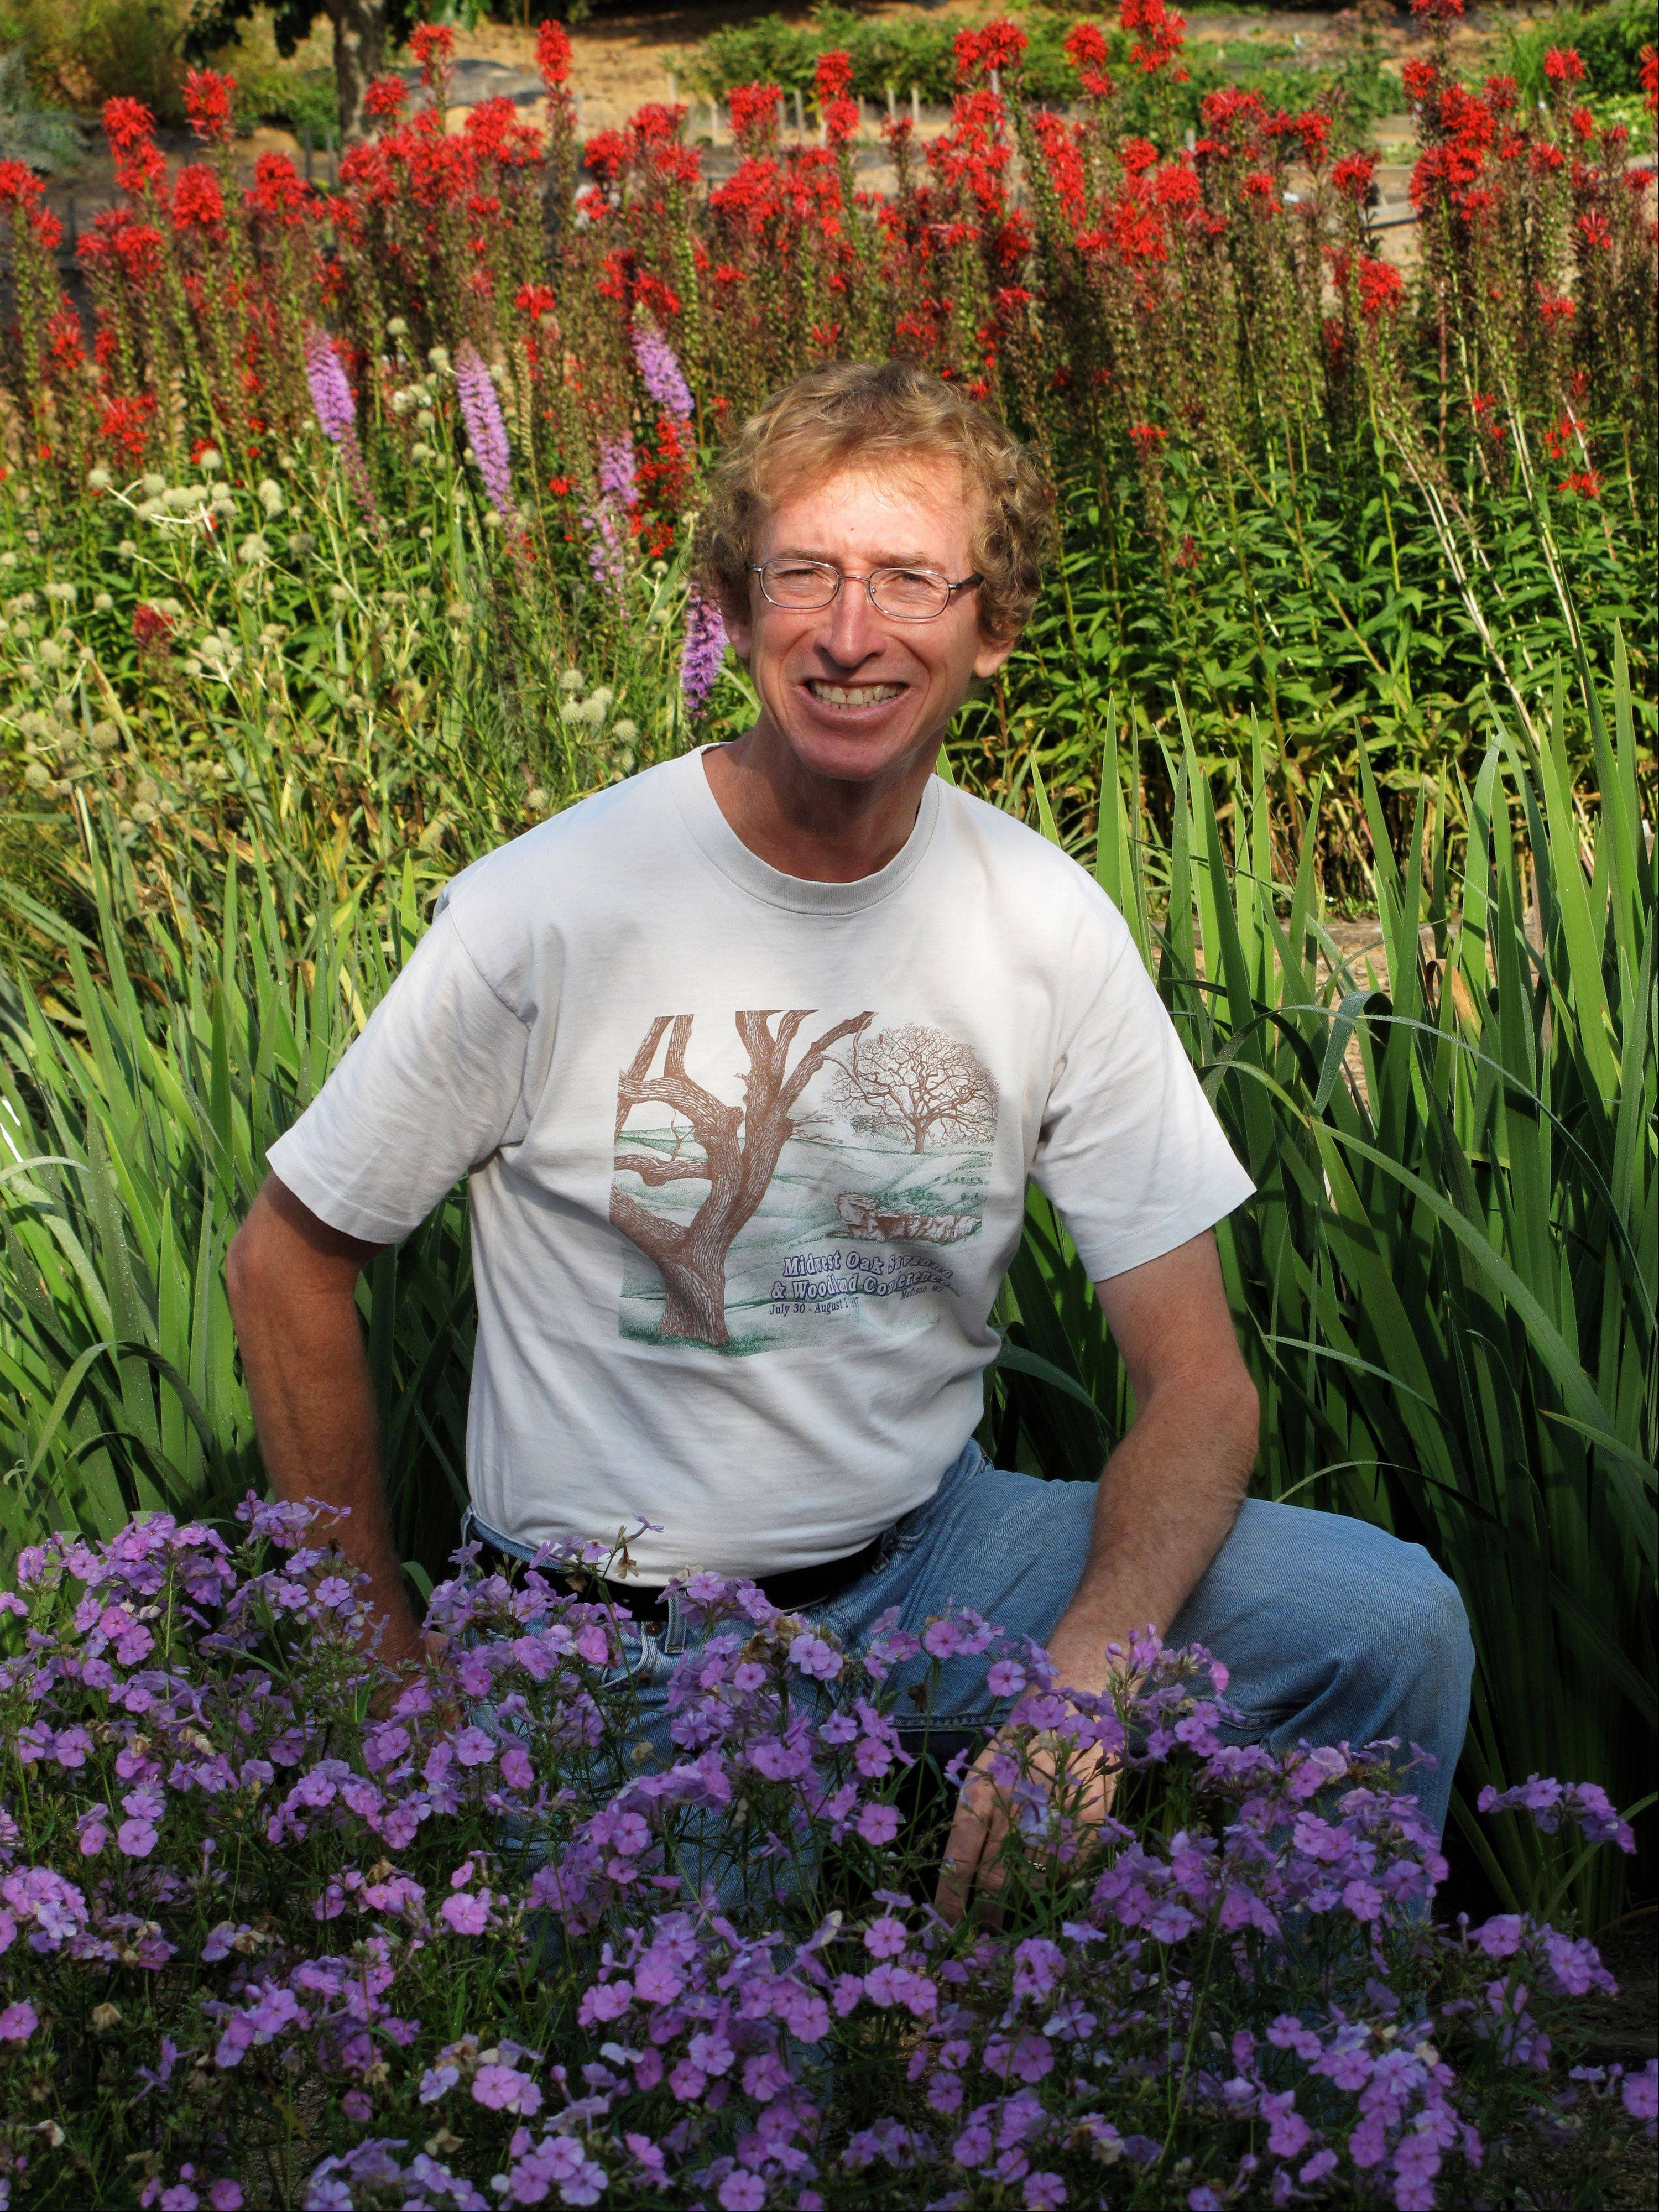 Bill Carter, president of Prairie Moon Nursery, poses amid an assortment of prairie flowers sown in a nearby farmyard near Winona, Minn. Many of these seeded perennials need two or three years to reach blooming size but really take off once established.